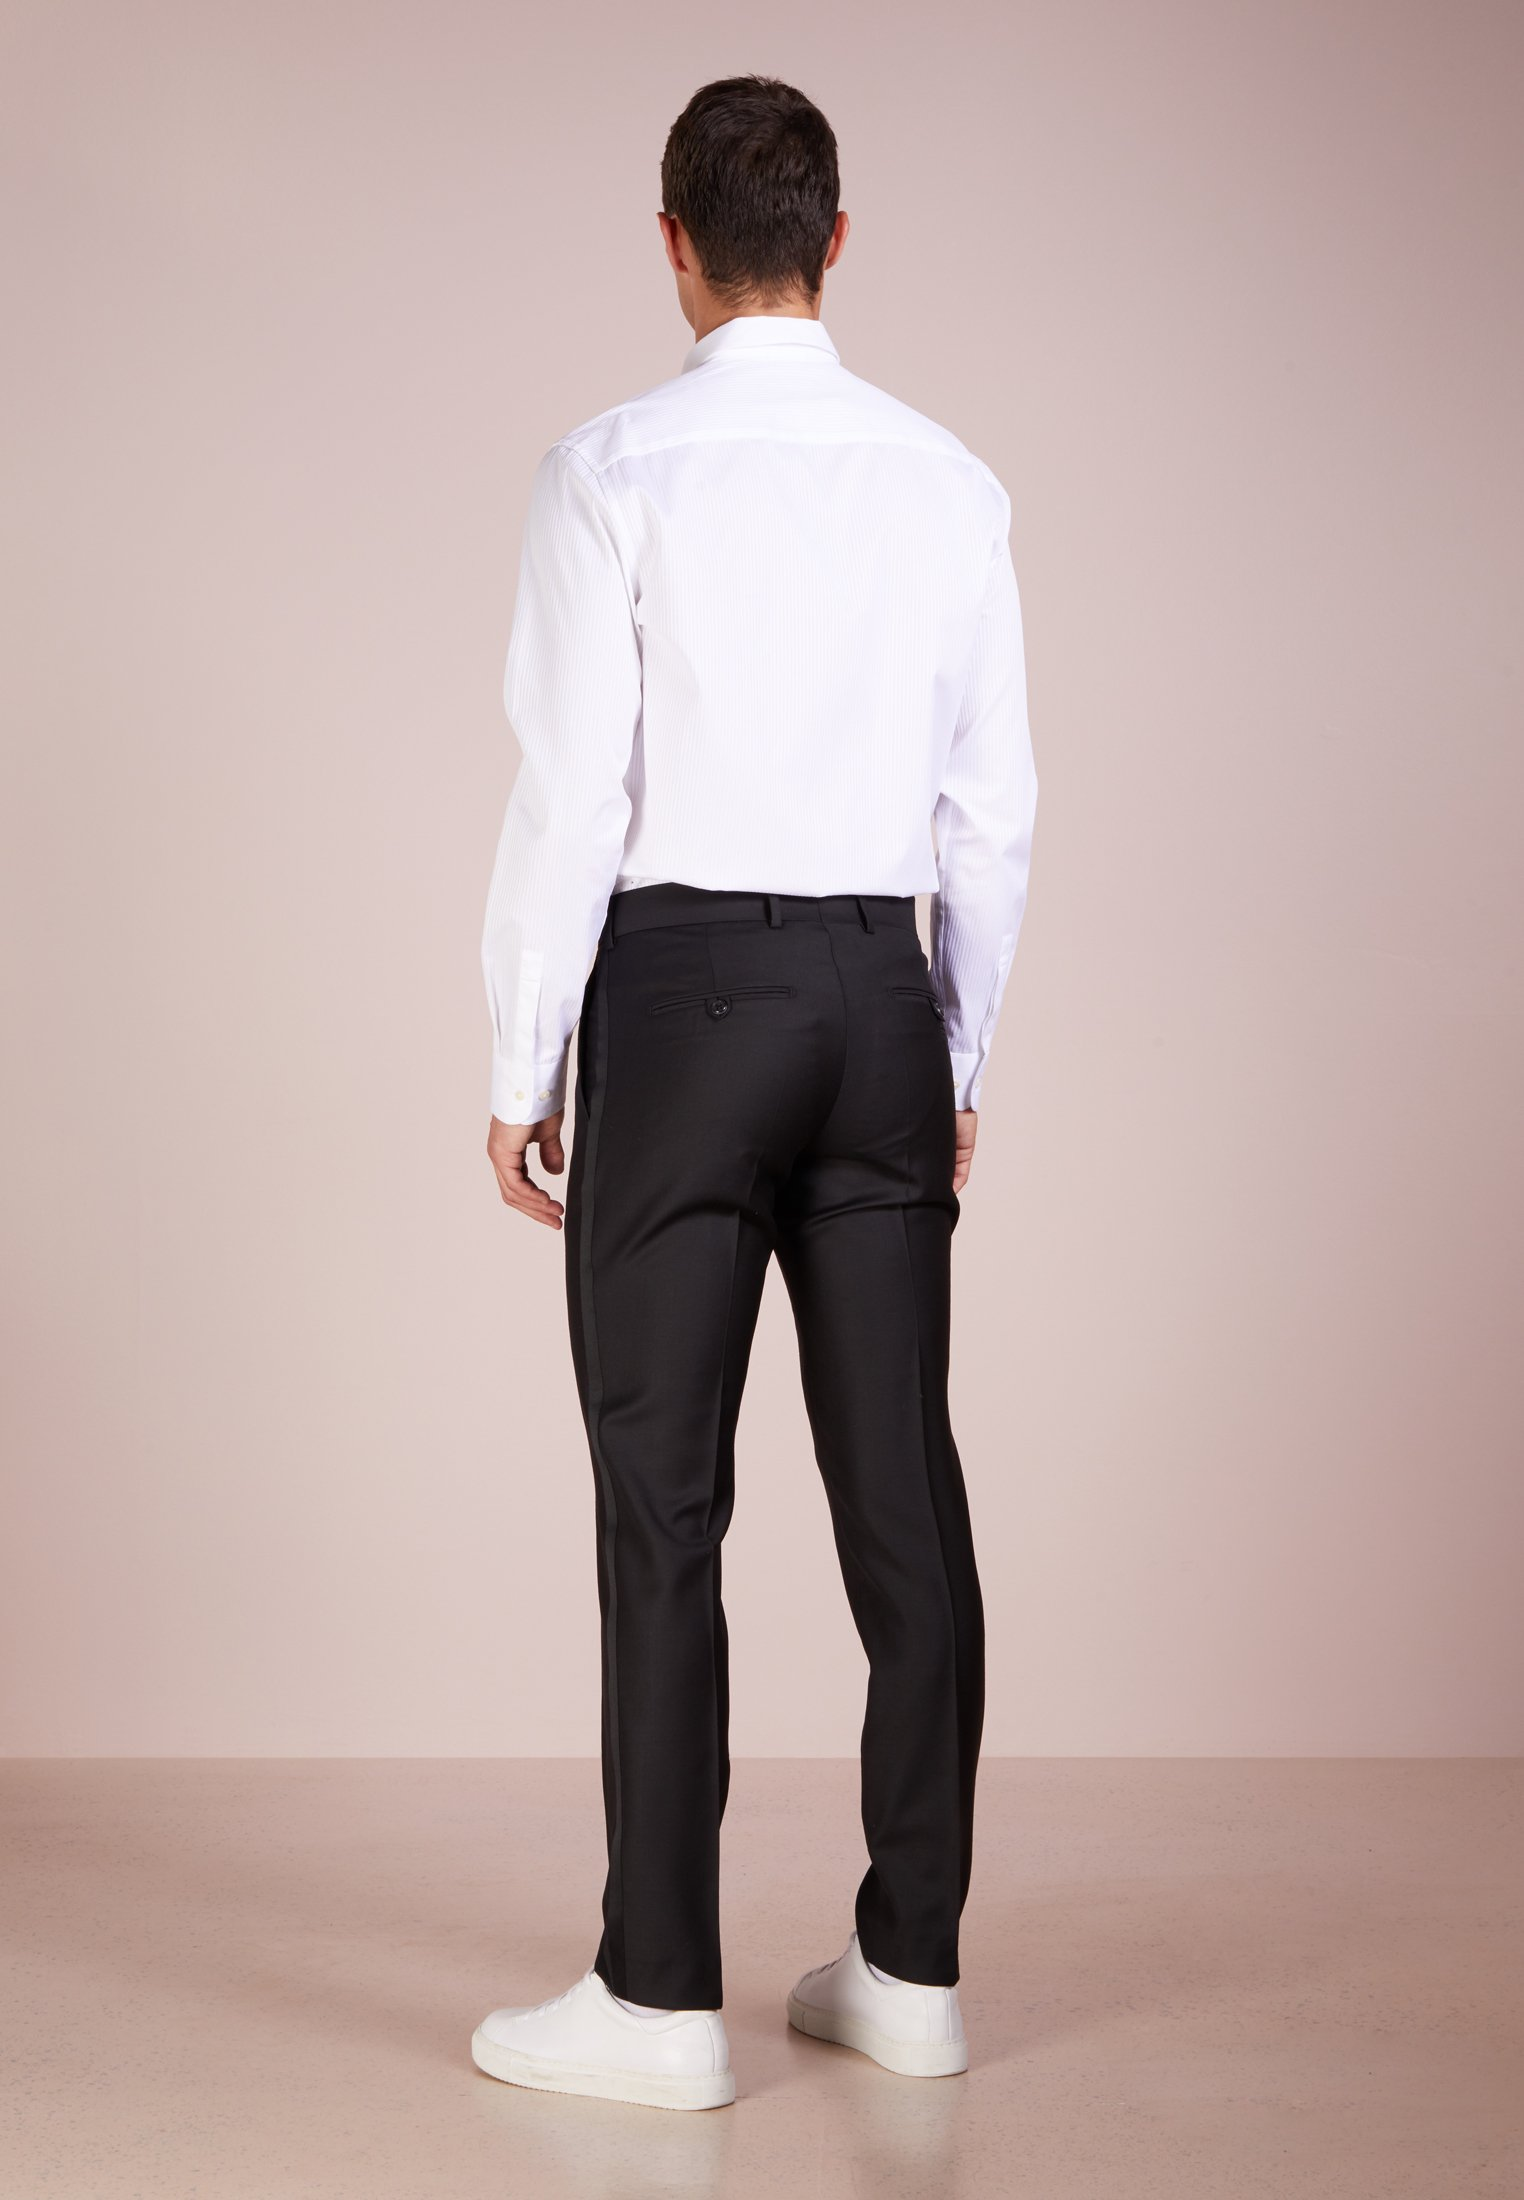 Tiger Of Sweden Terriss Tuxedo Pants - Suit Trousers Black